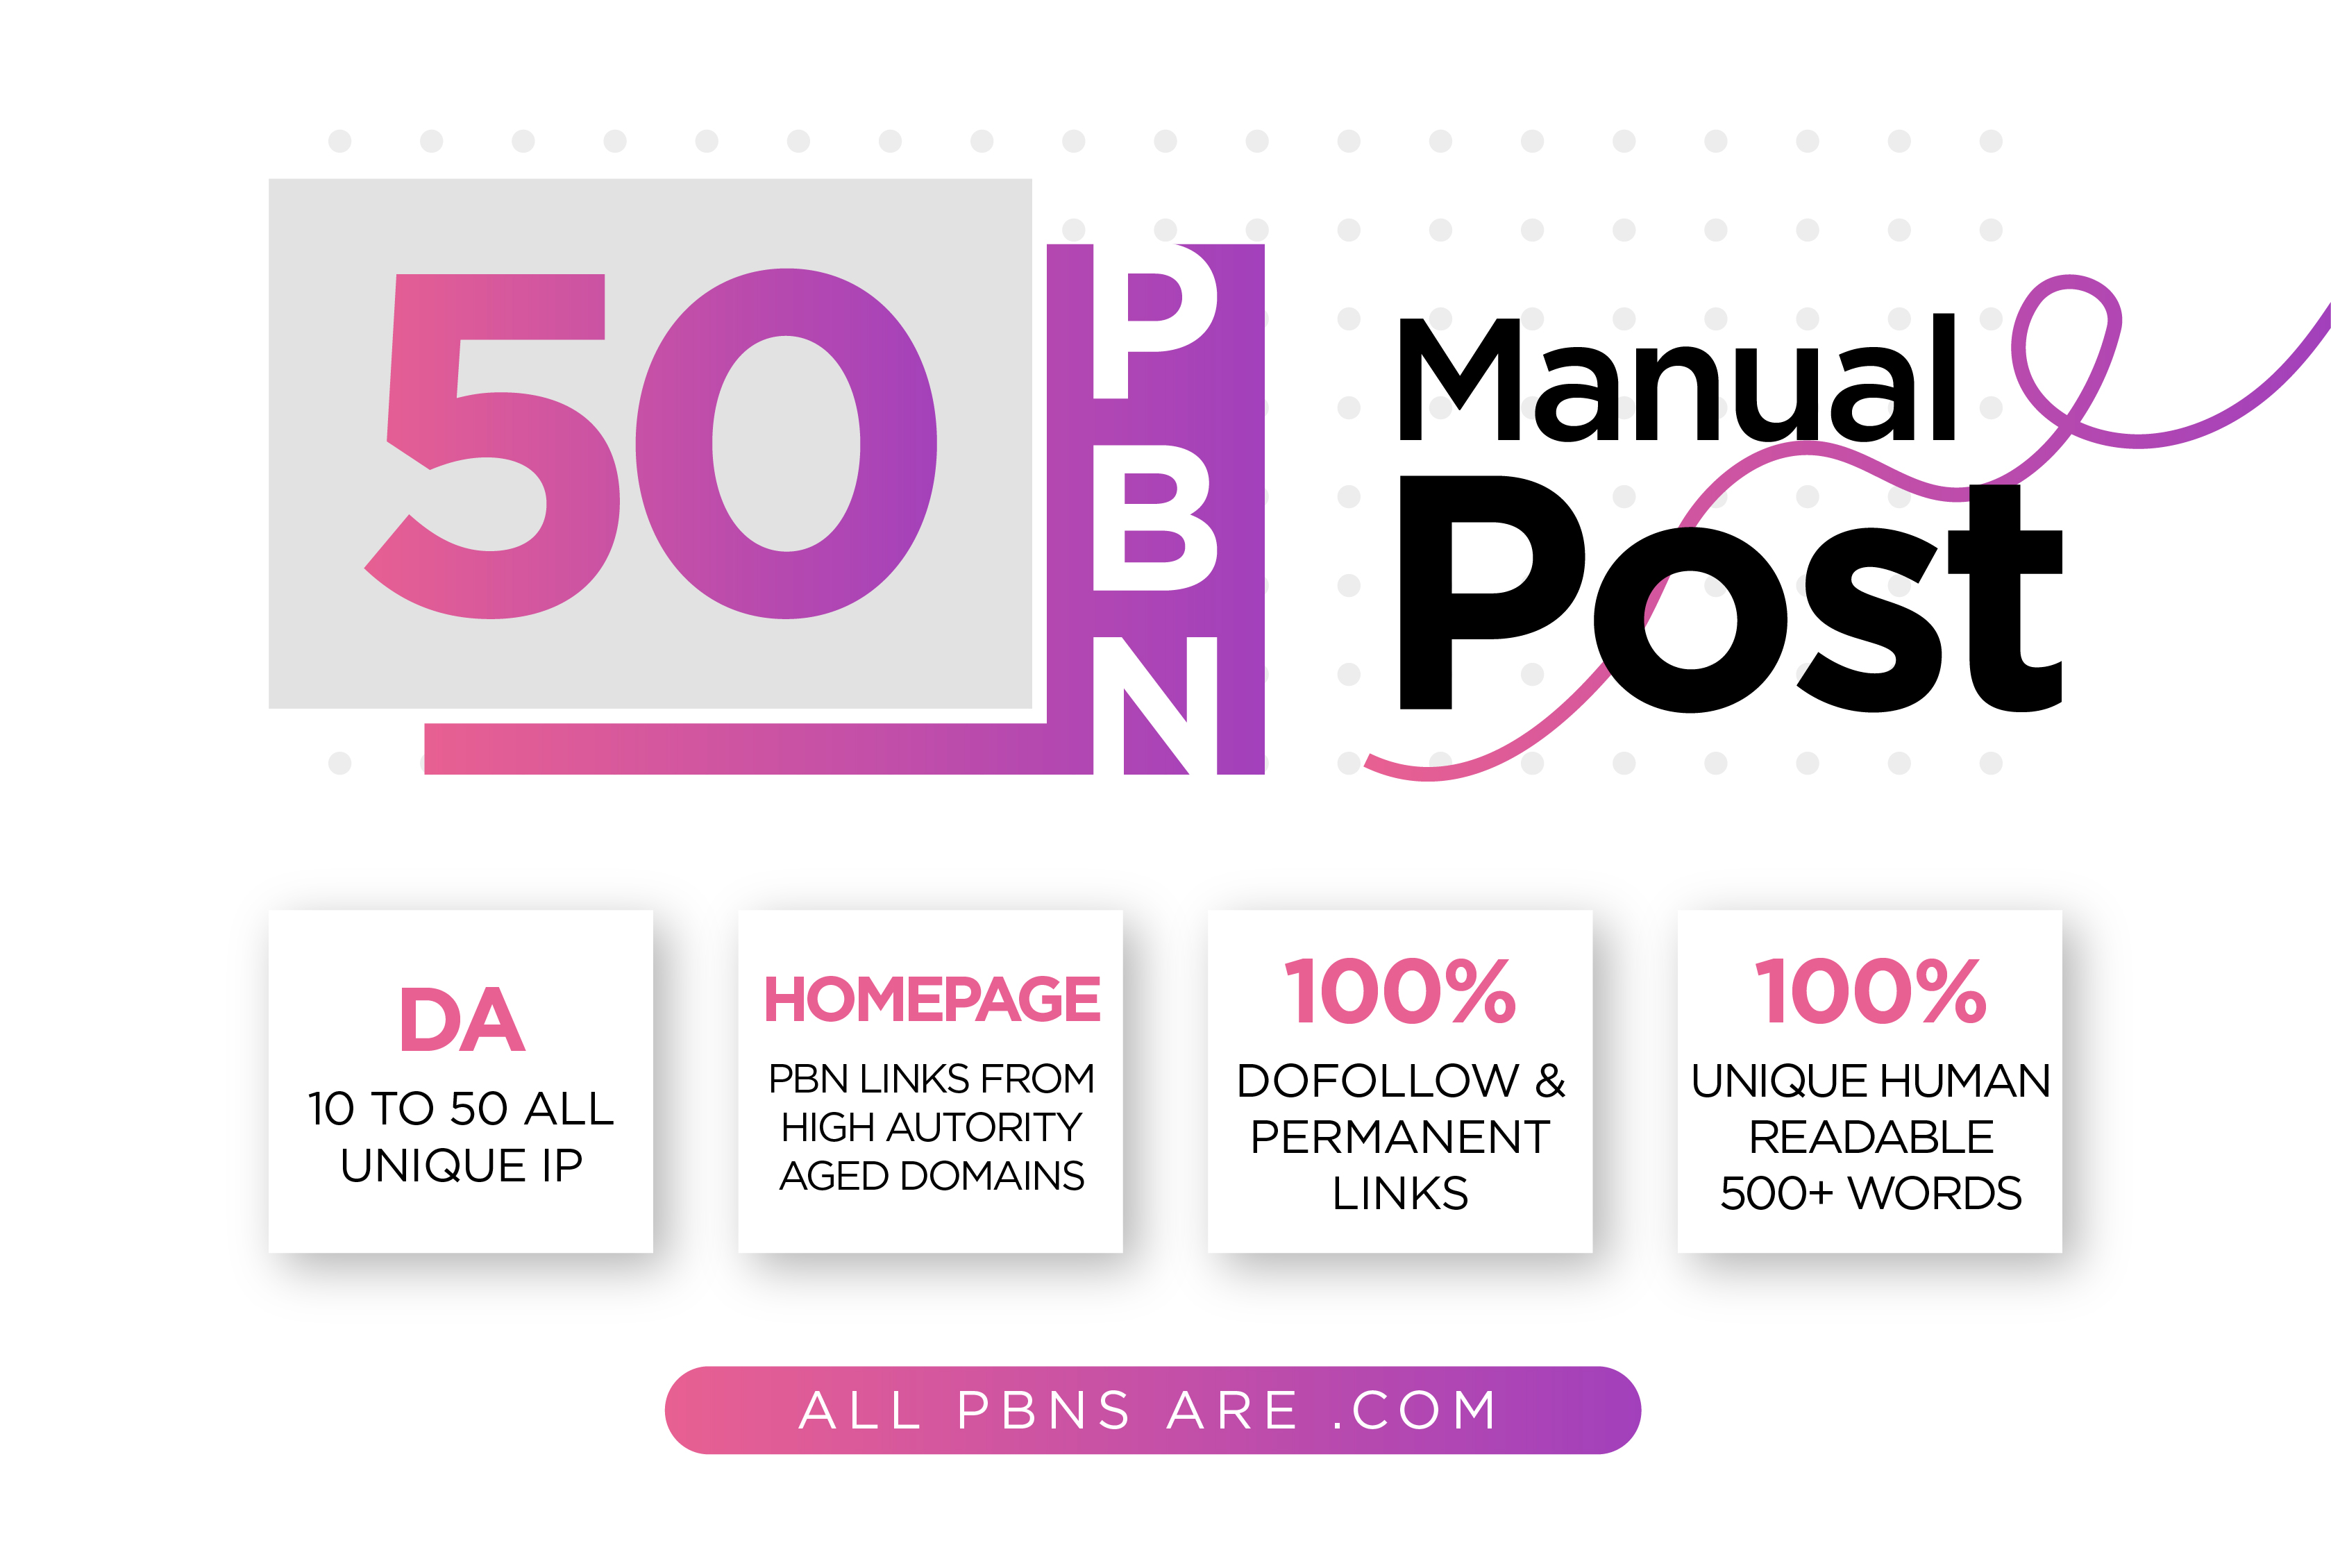 Build 50 permanent homepage pbn backlinks in google ranking